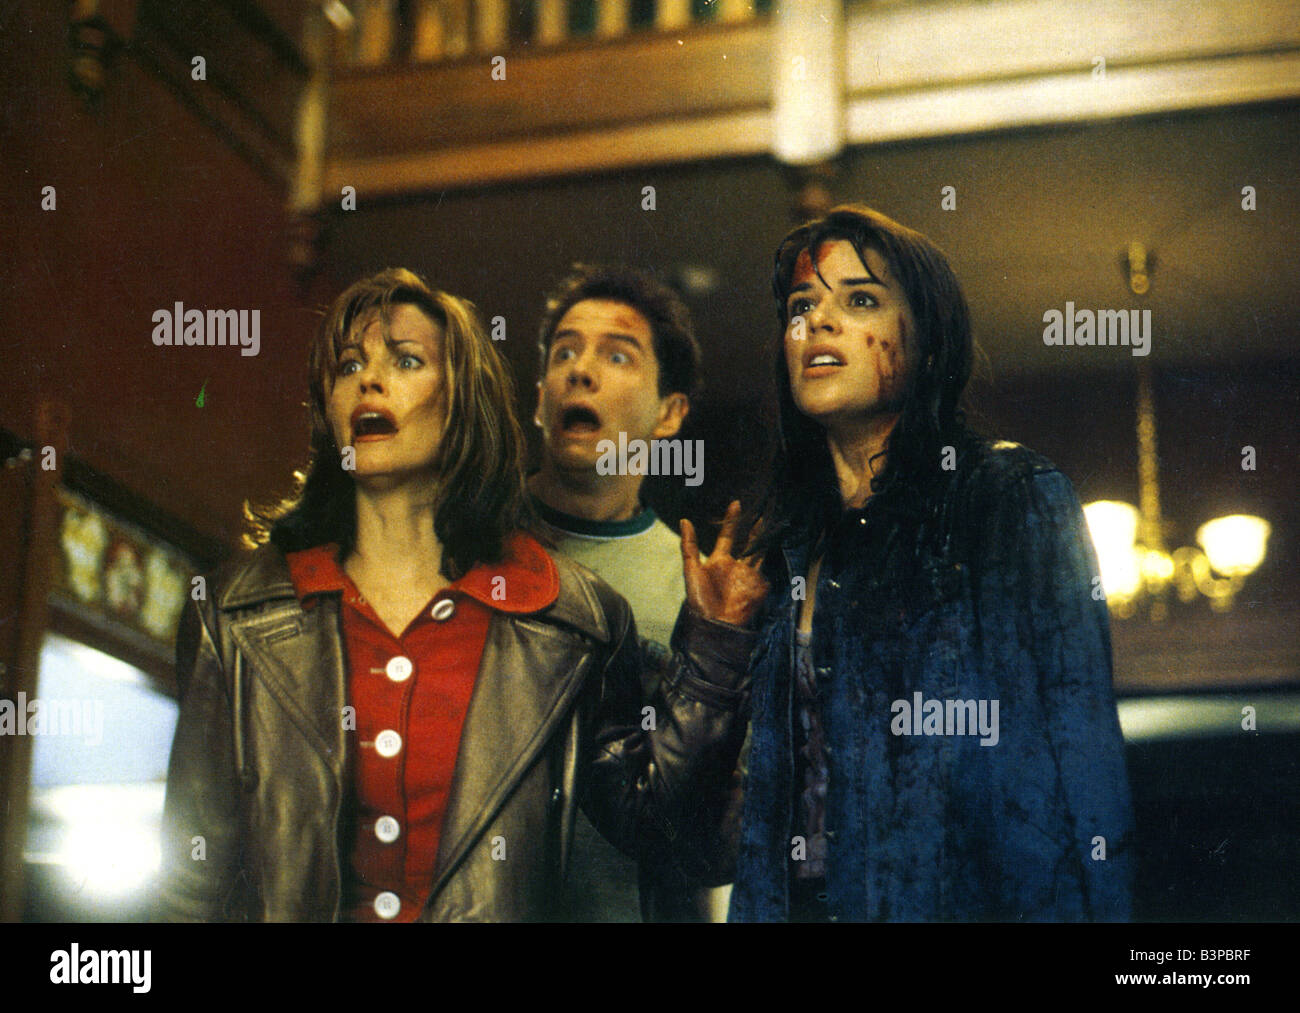 SCREAM  1996 Buena Vista film - Stock Image